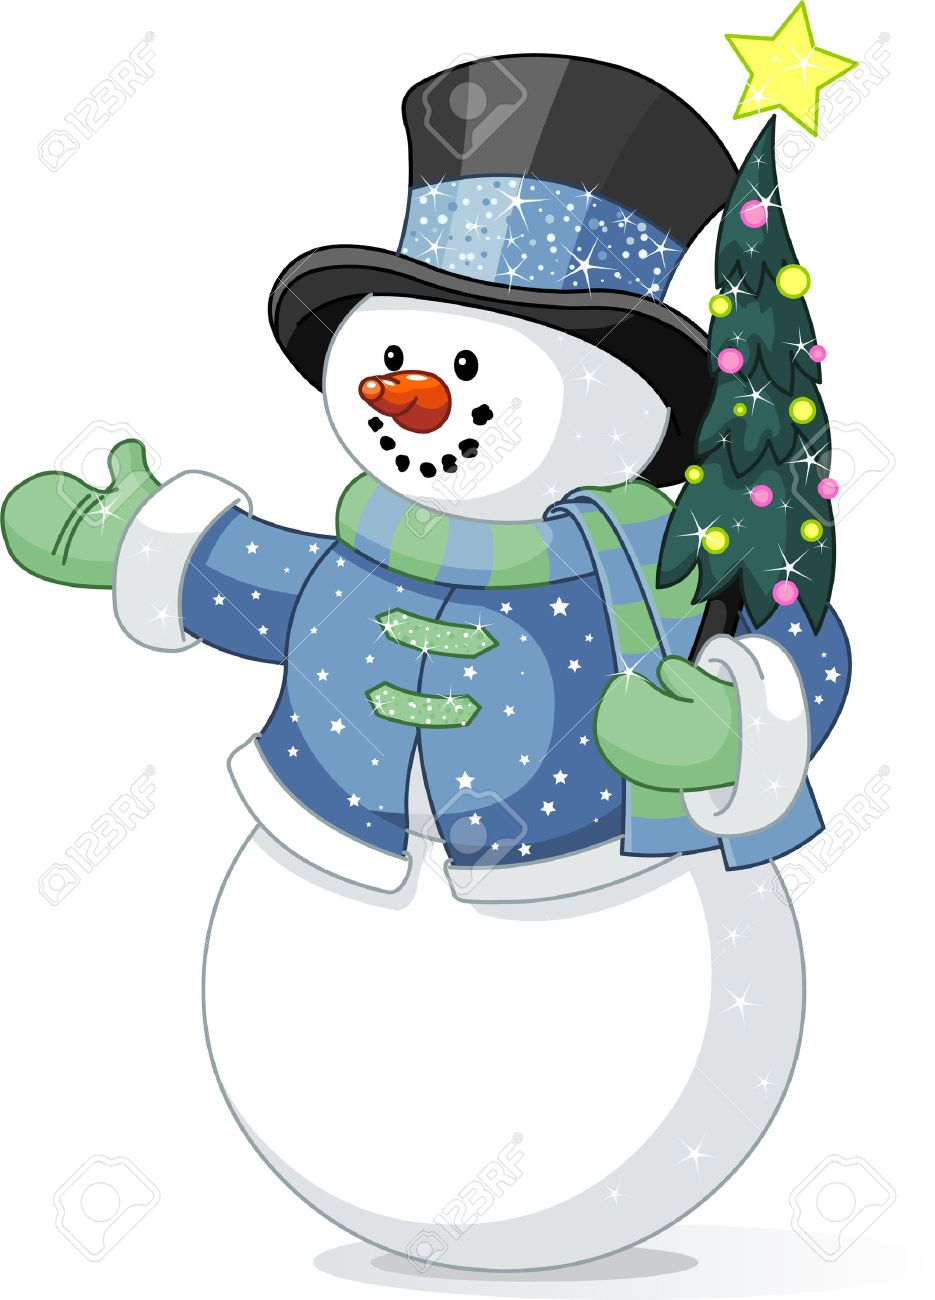 Illustration of cute  snowman with Christmas tree Stock Vector - 8339594